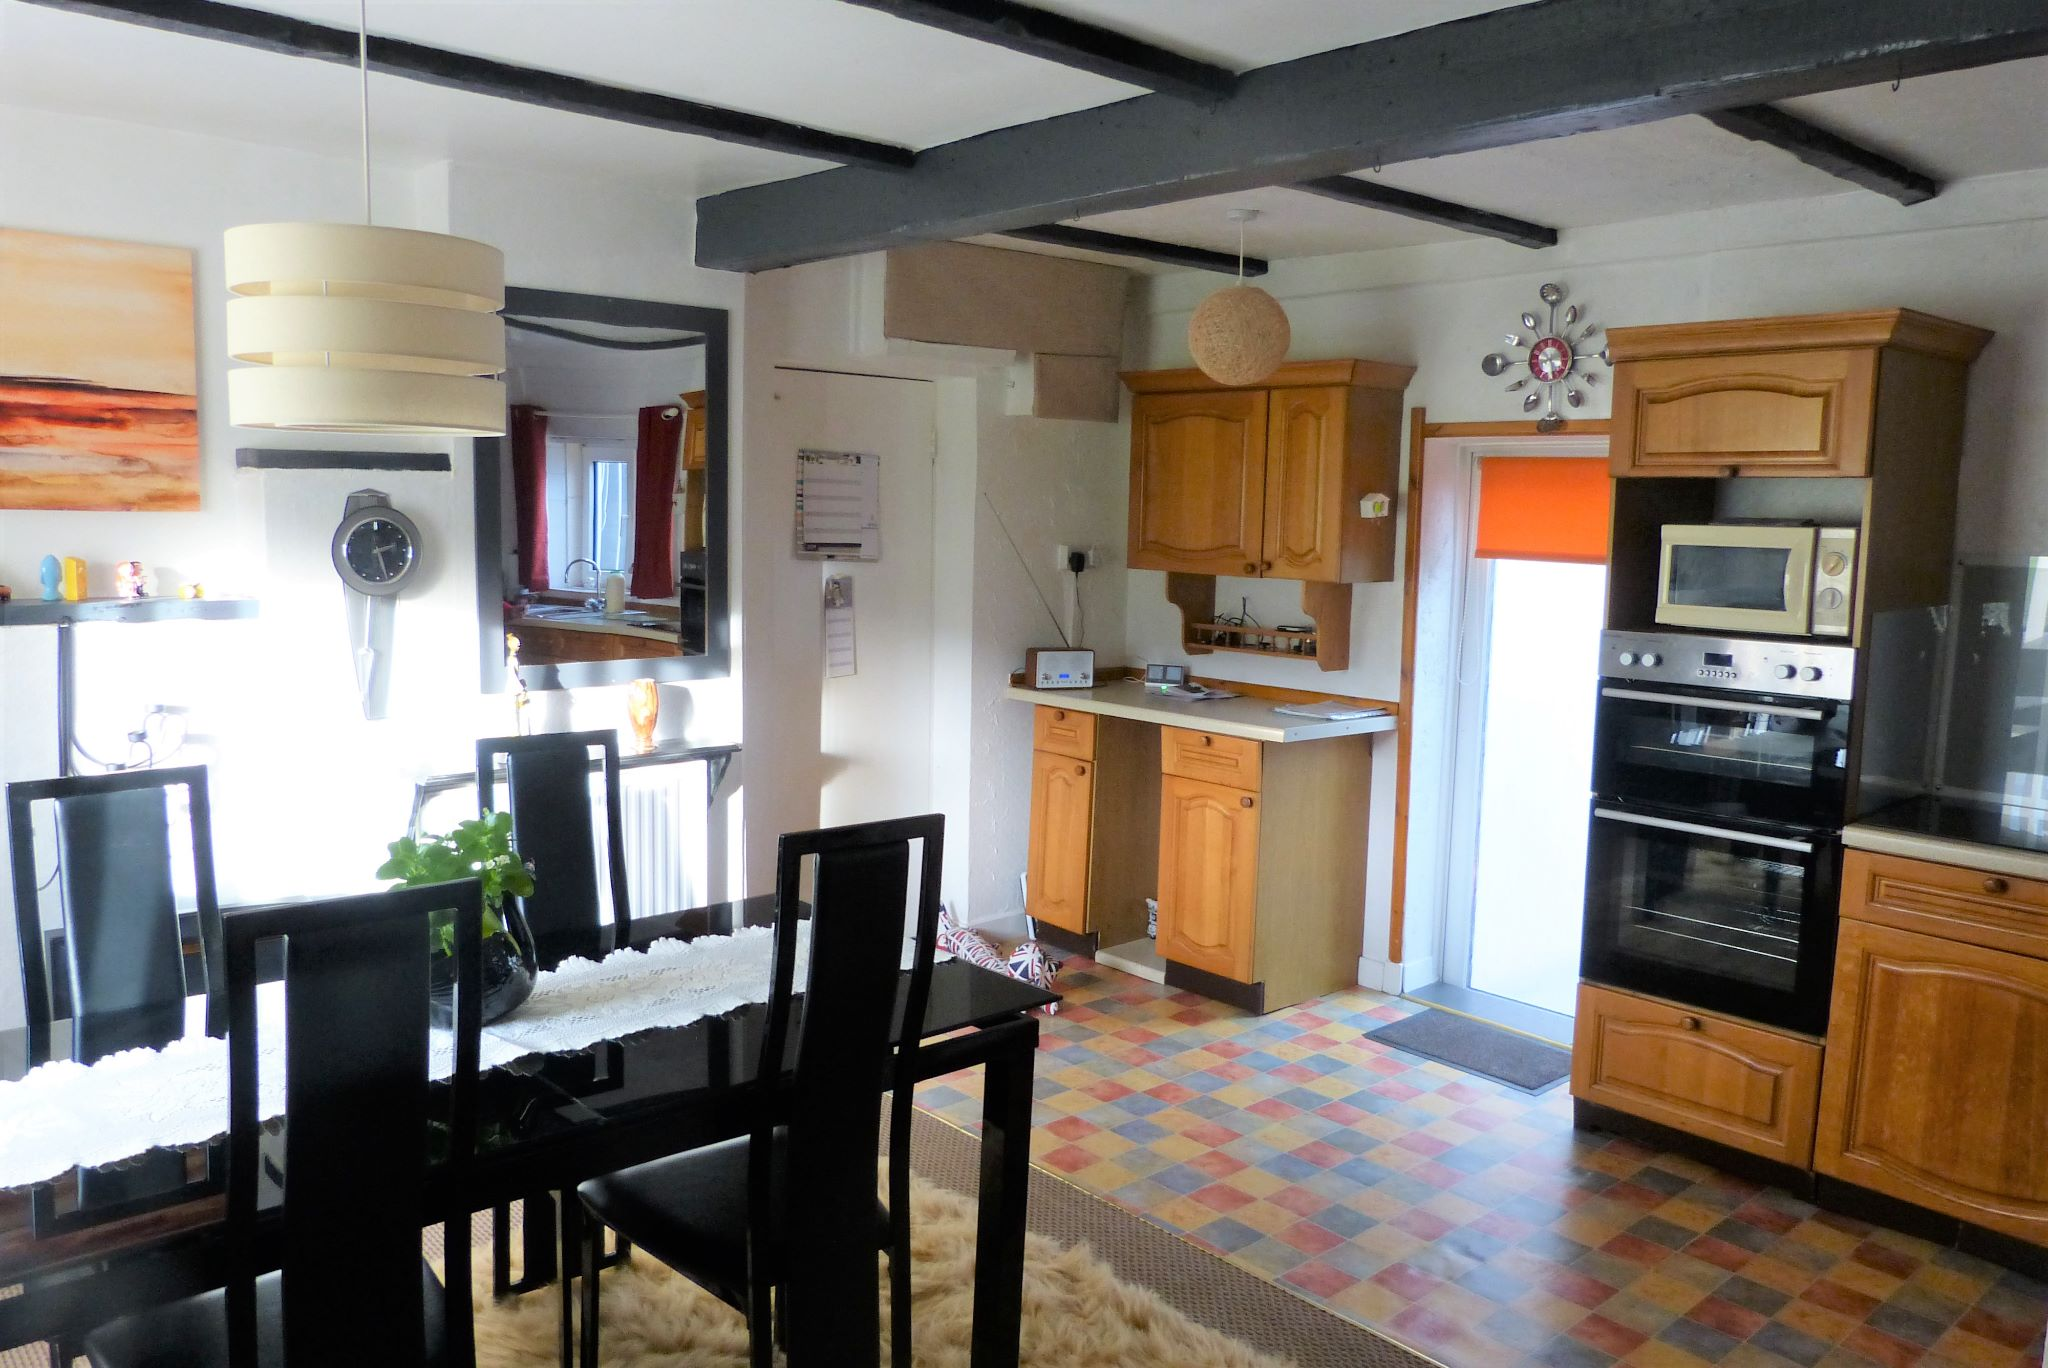 3 bedroom semi-detached house For Sale in Abergele - Photograph 3